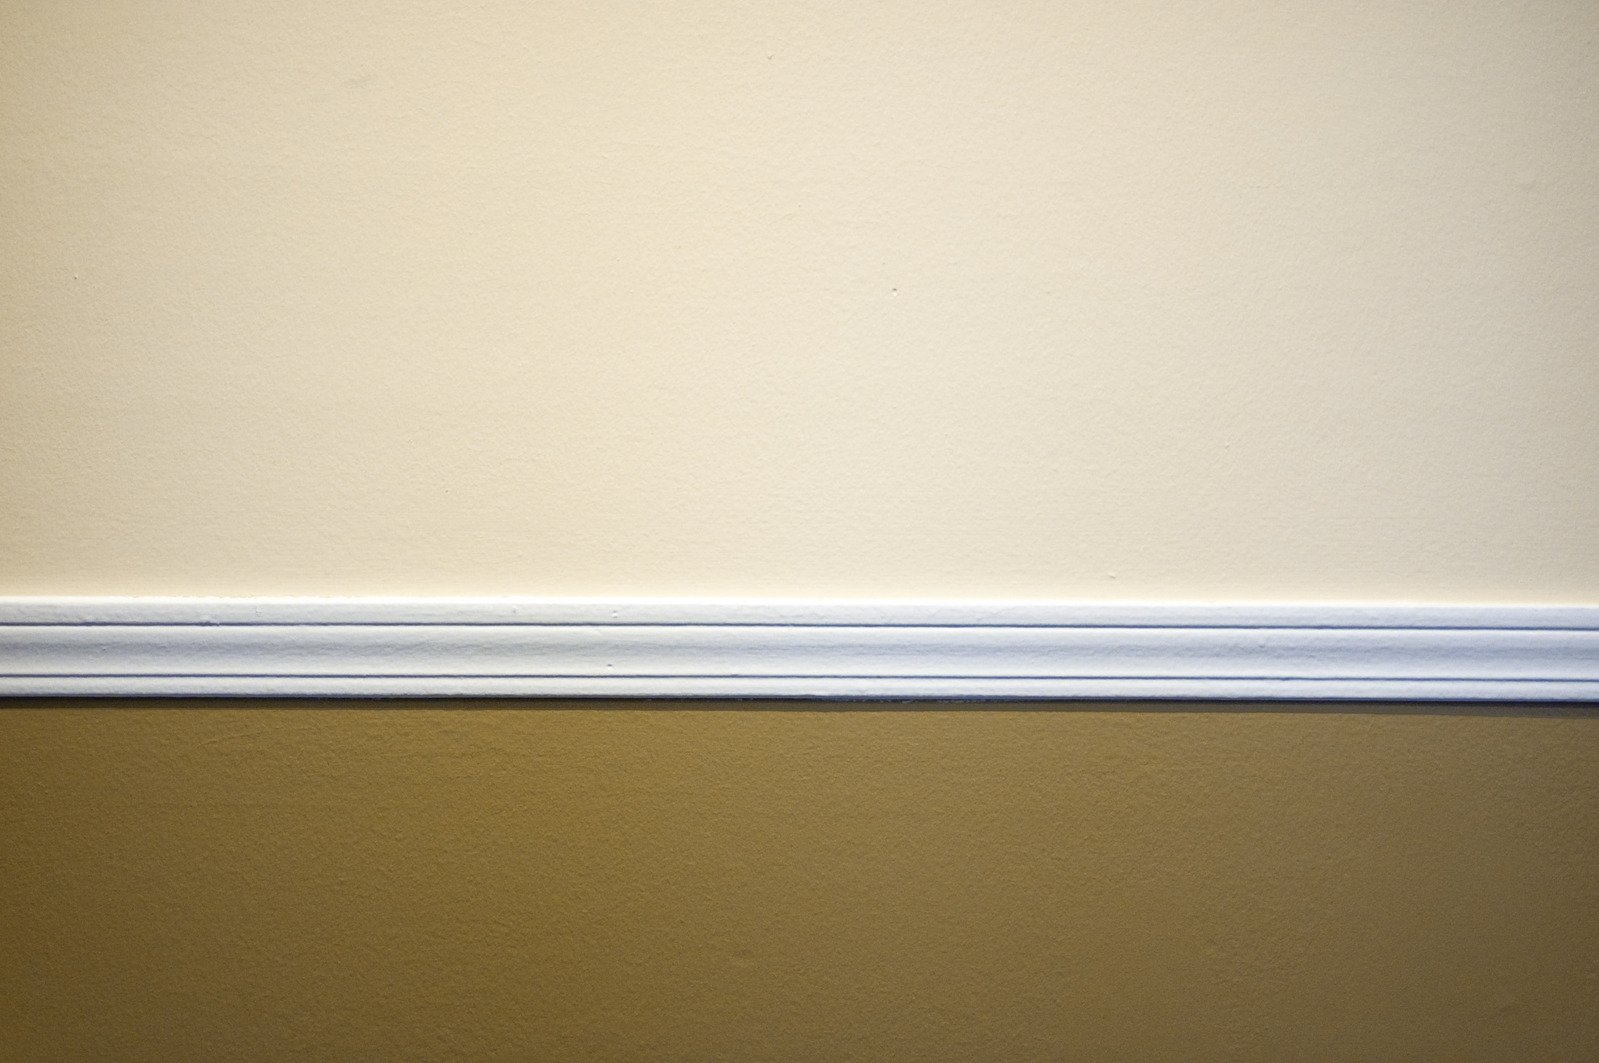 chair rail corners without coping to help baby sit up free stock photo freeimages